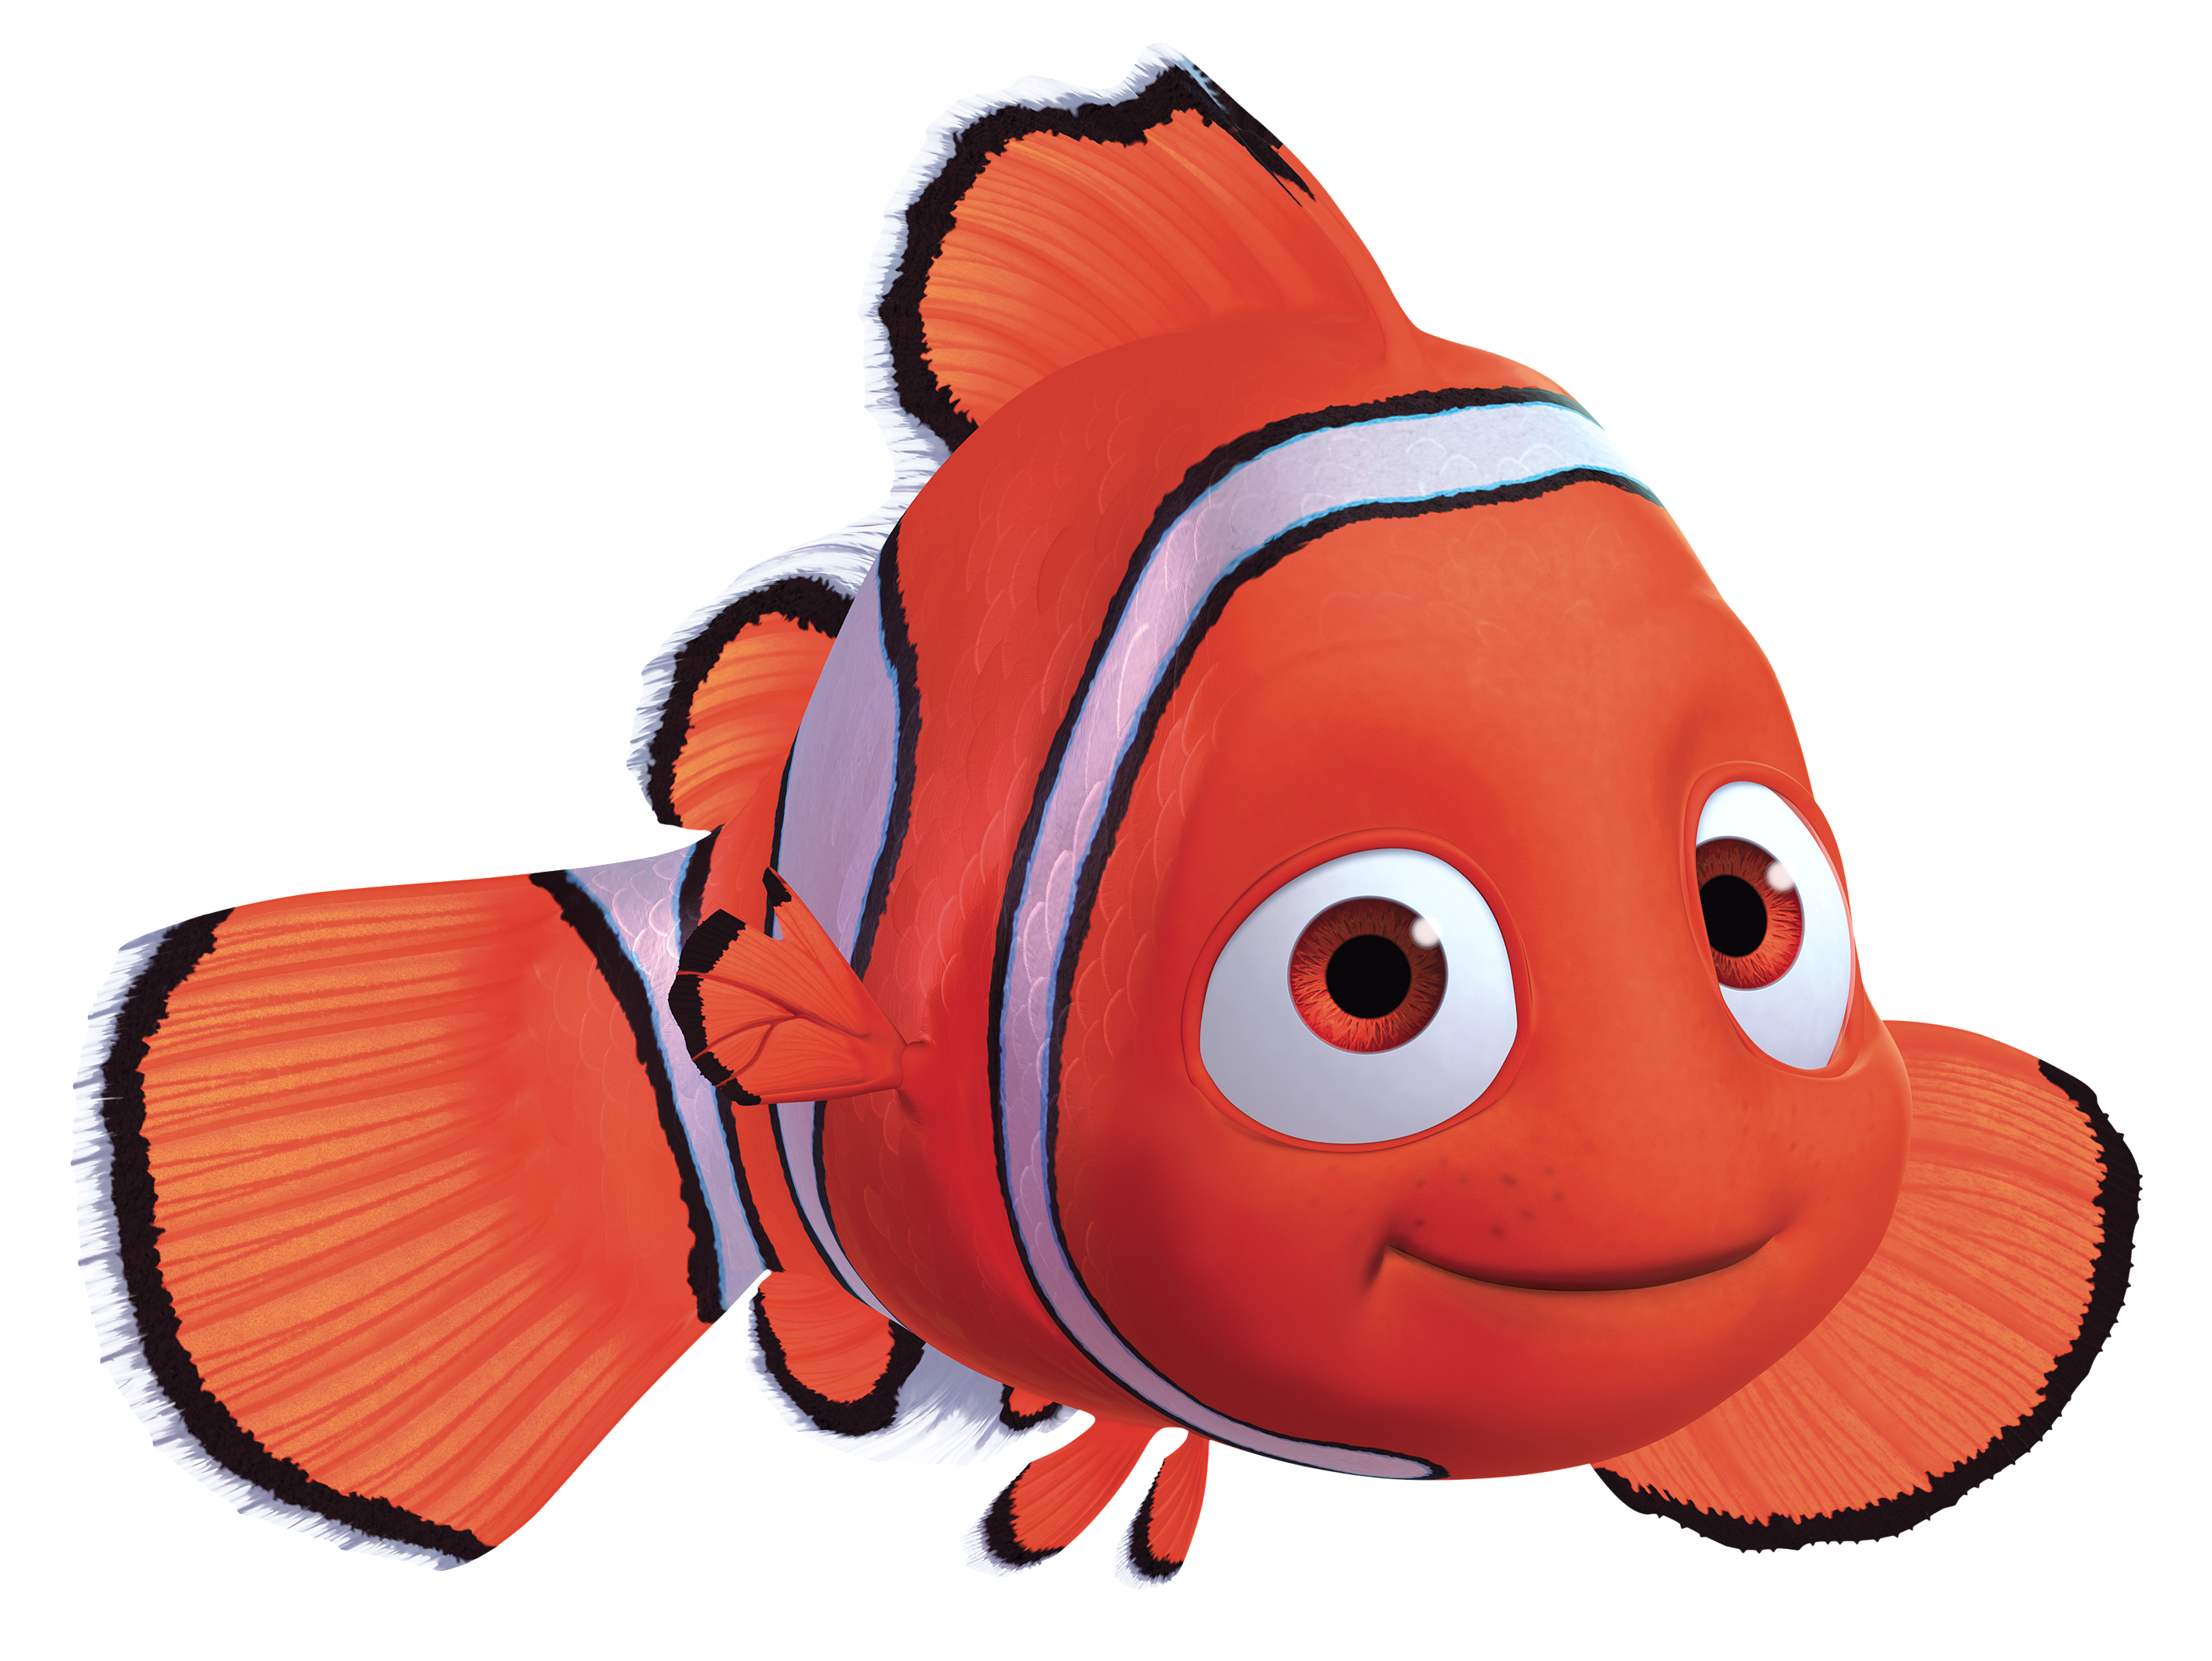 Finding Nemo Characters Dory Clipart Fre-Finding Nemo Characters Dory Clipart Free Clip Art Images-3